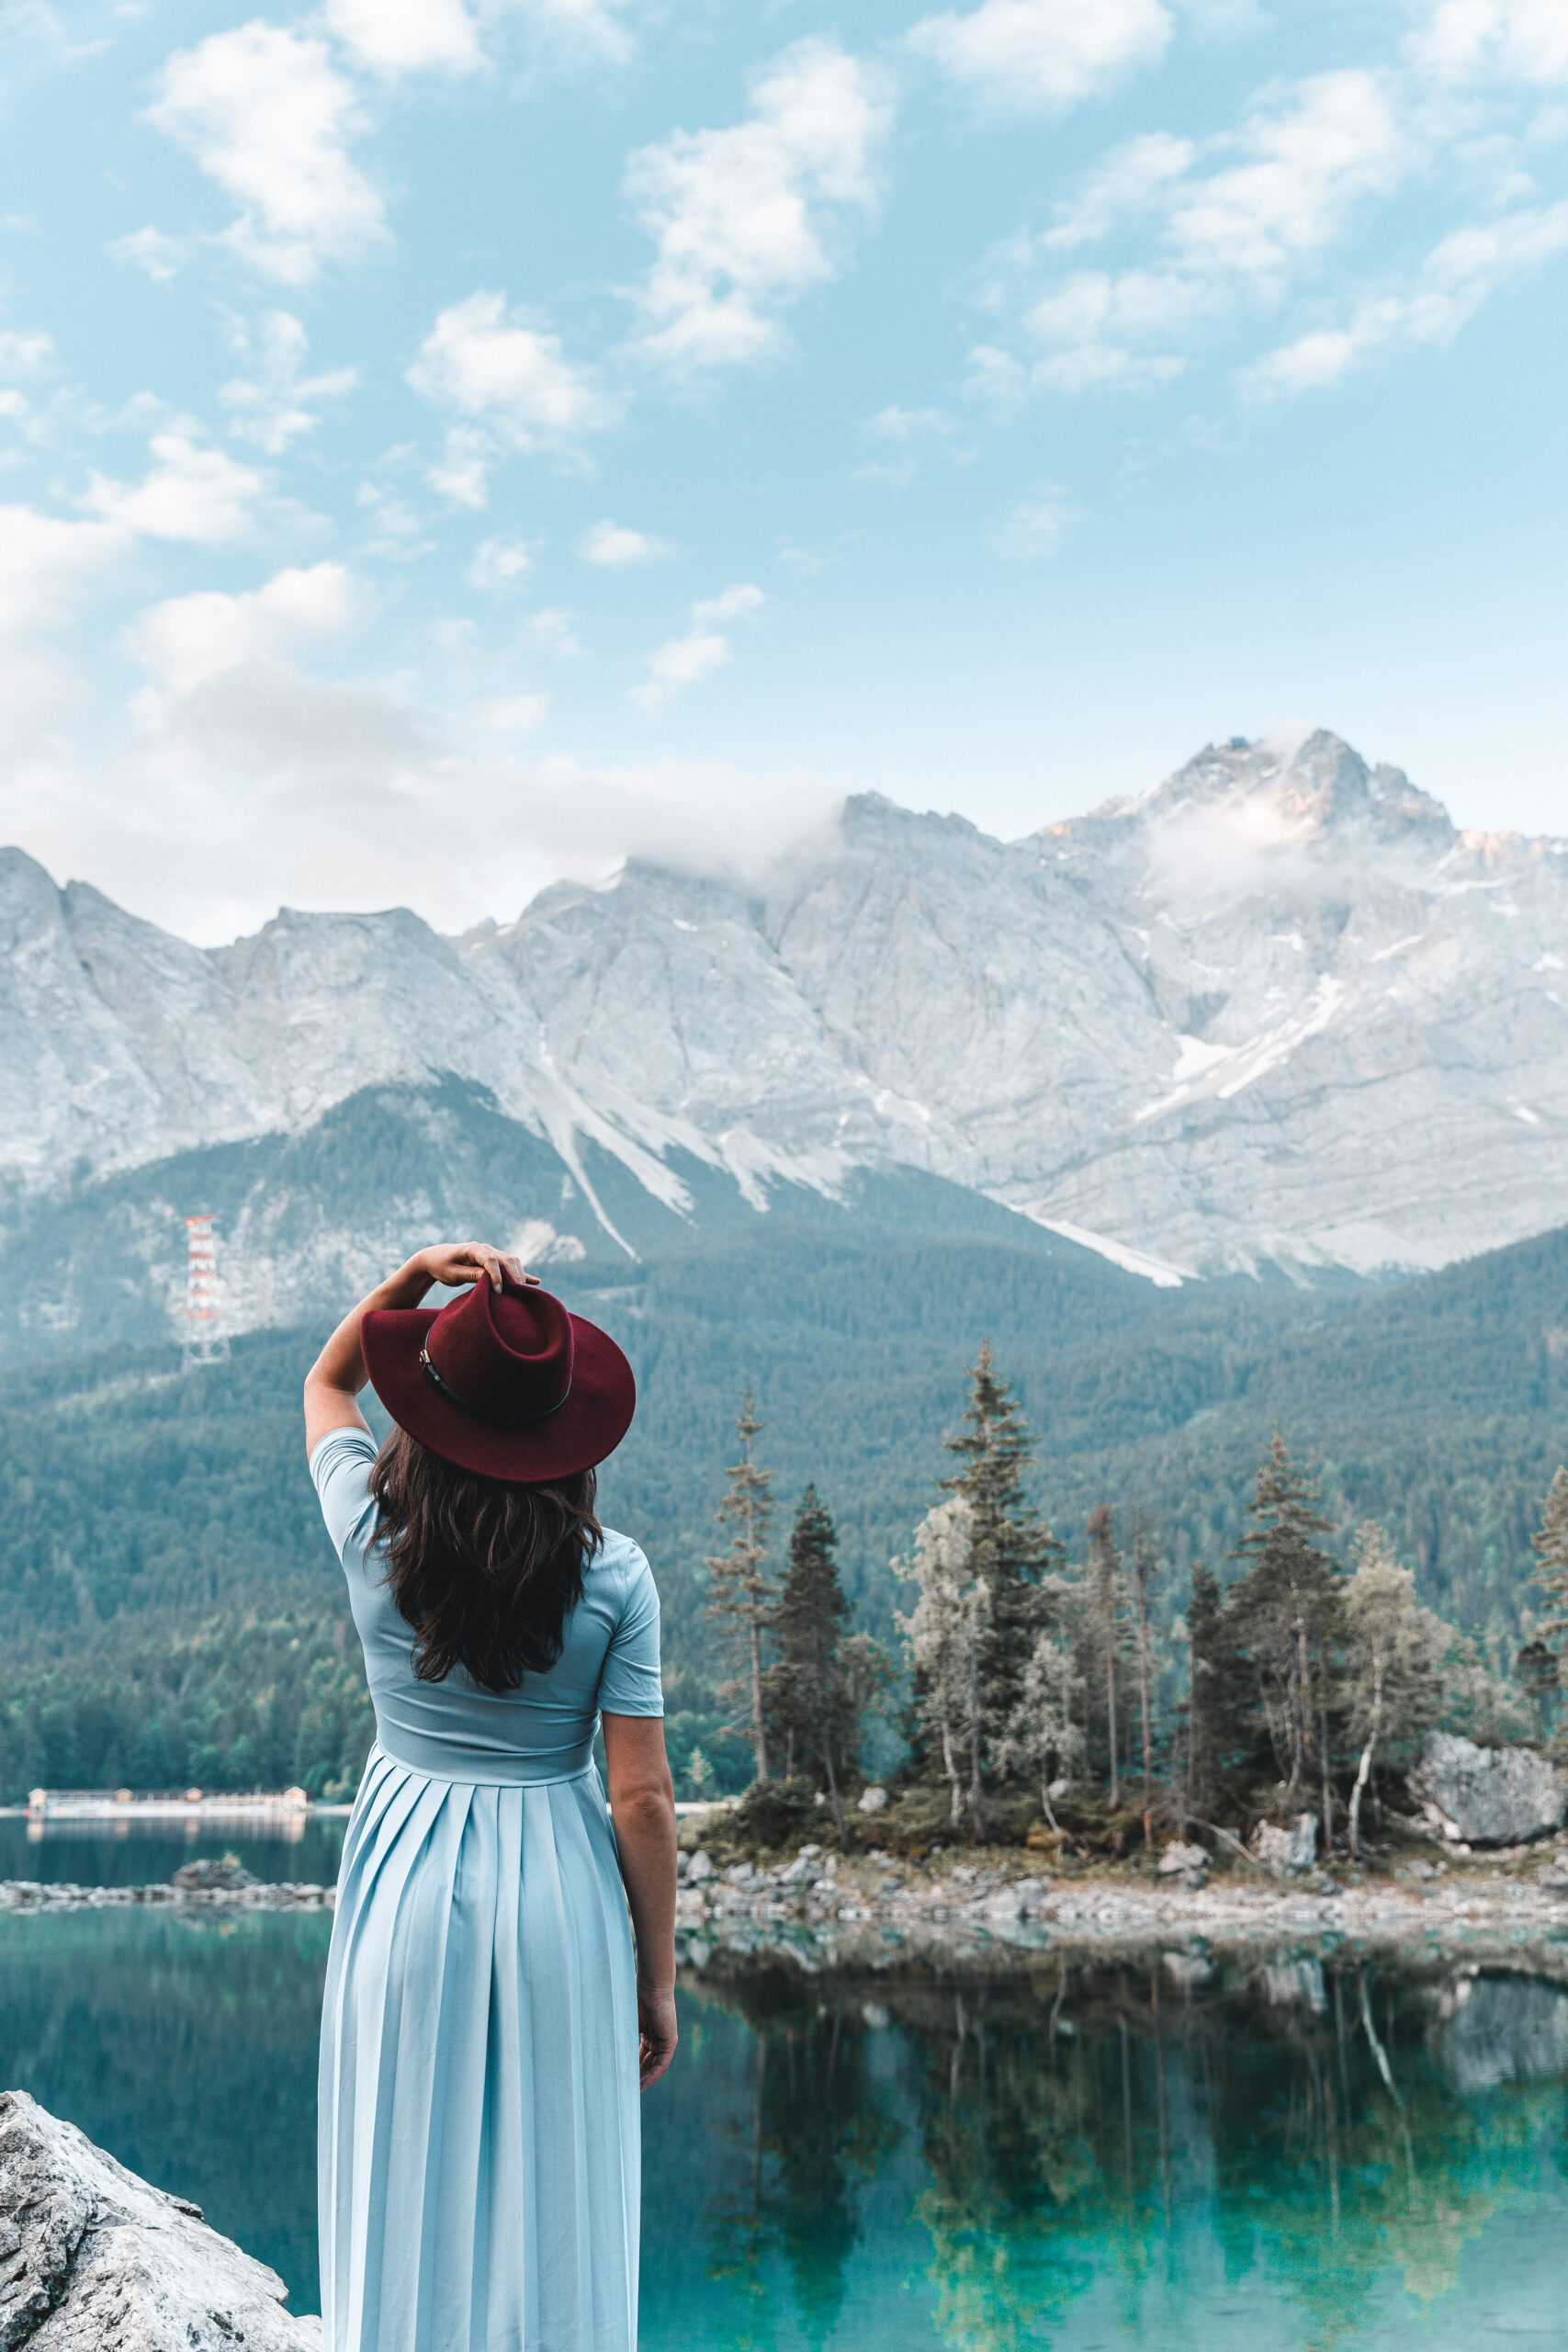 Eibsee | How to get there, photo spots, travel tips and more